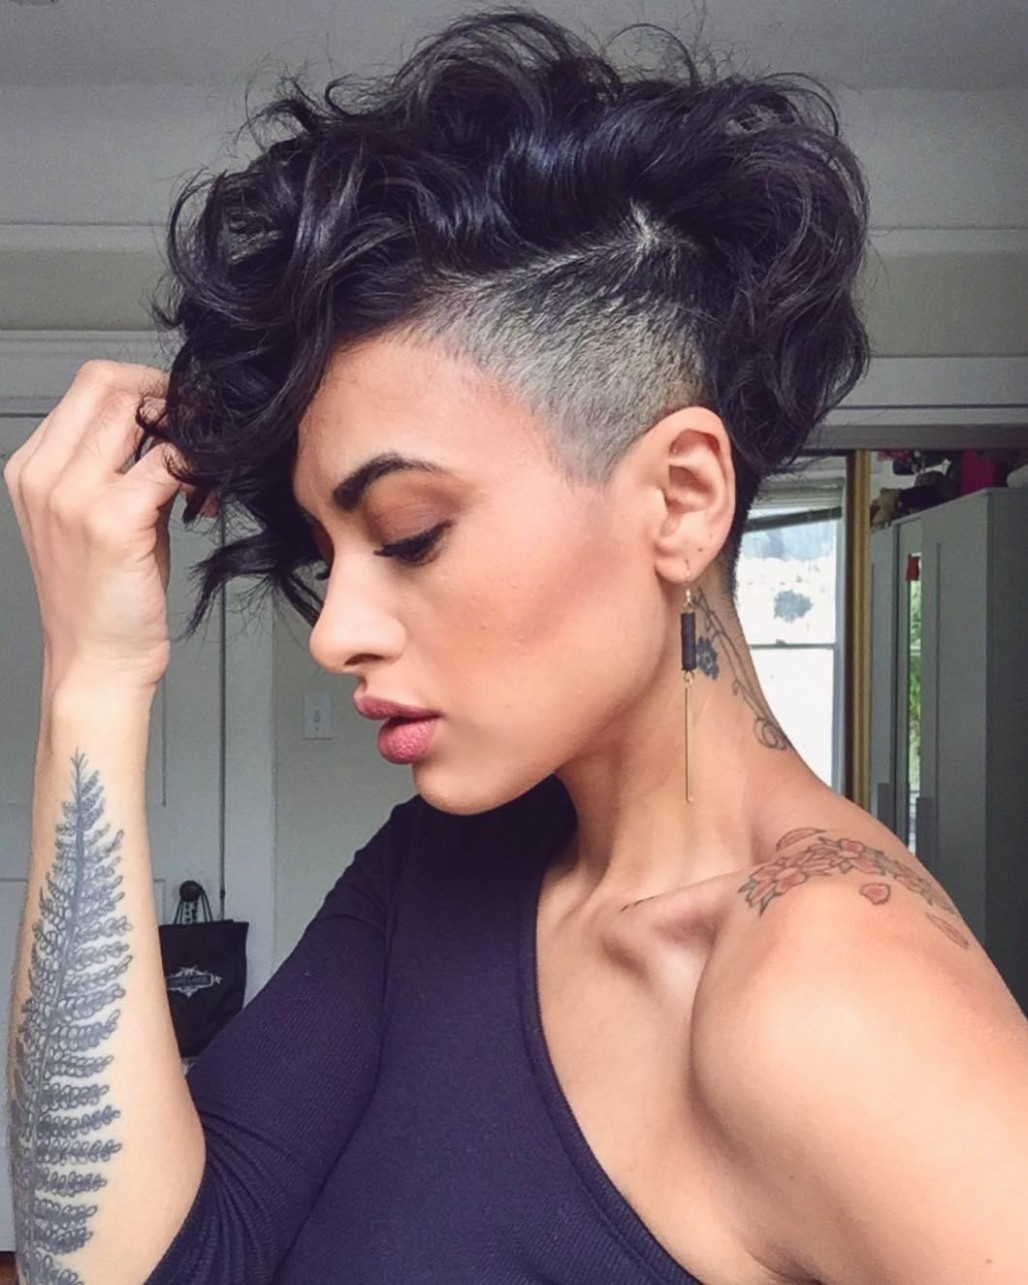 12 Bold Shaved Hairstyles For Women Shaved Hair Designs Shaved Curly Hairstyles